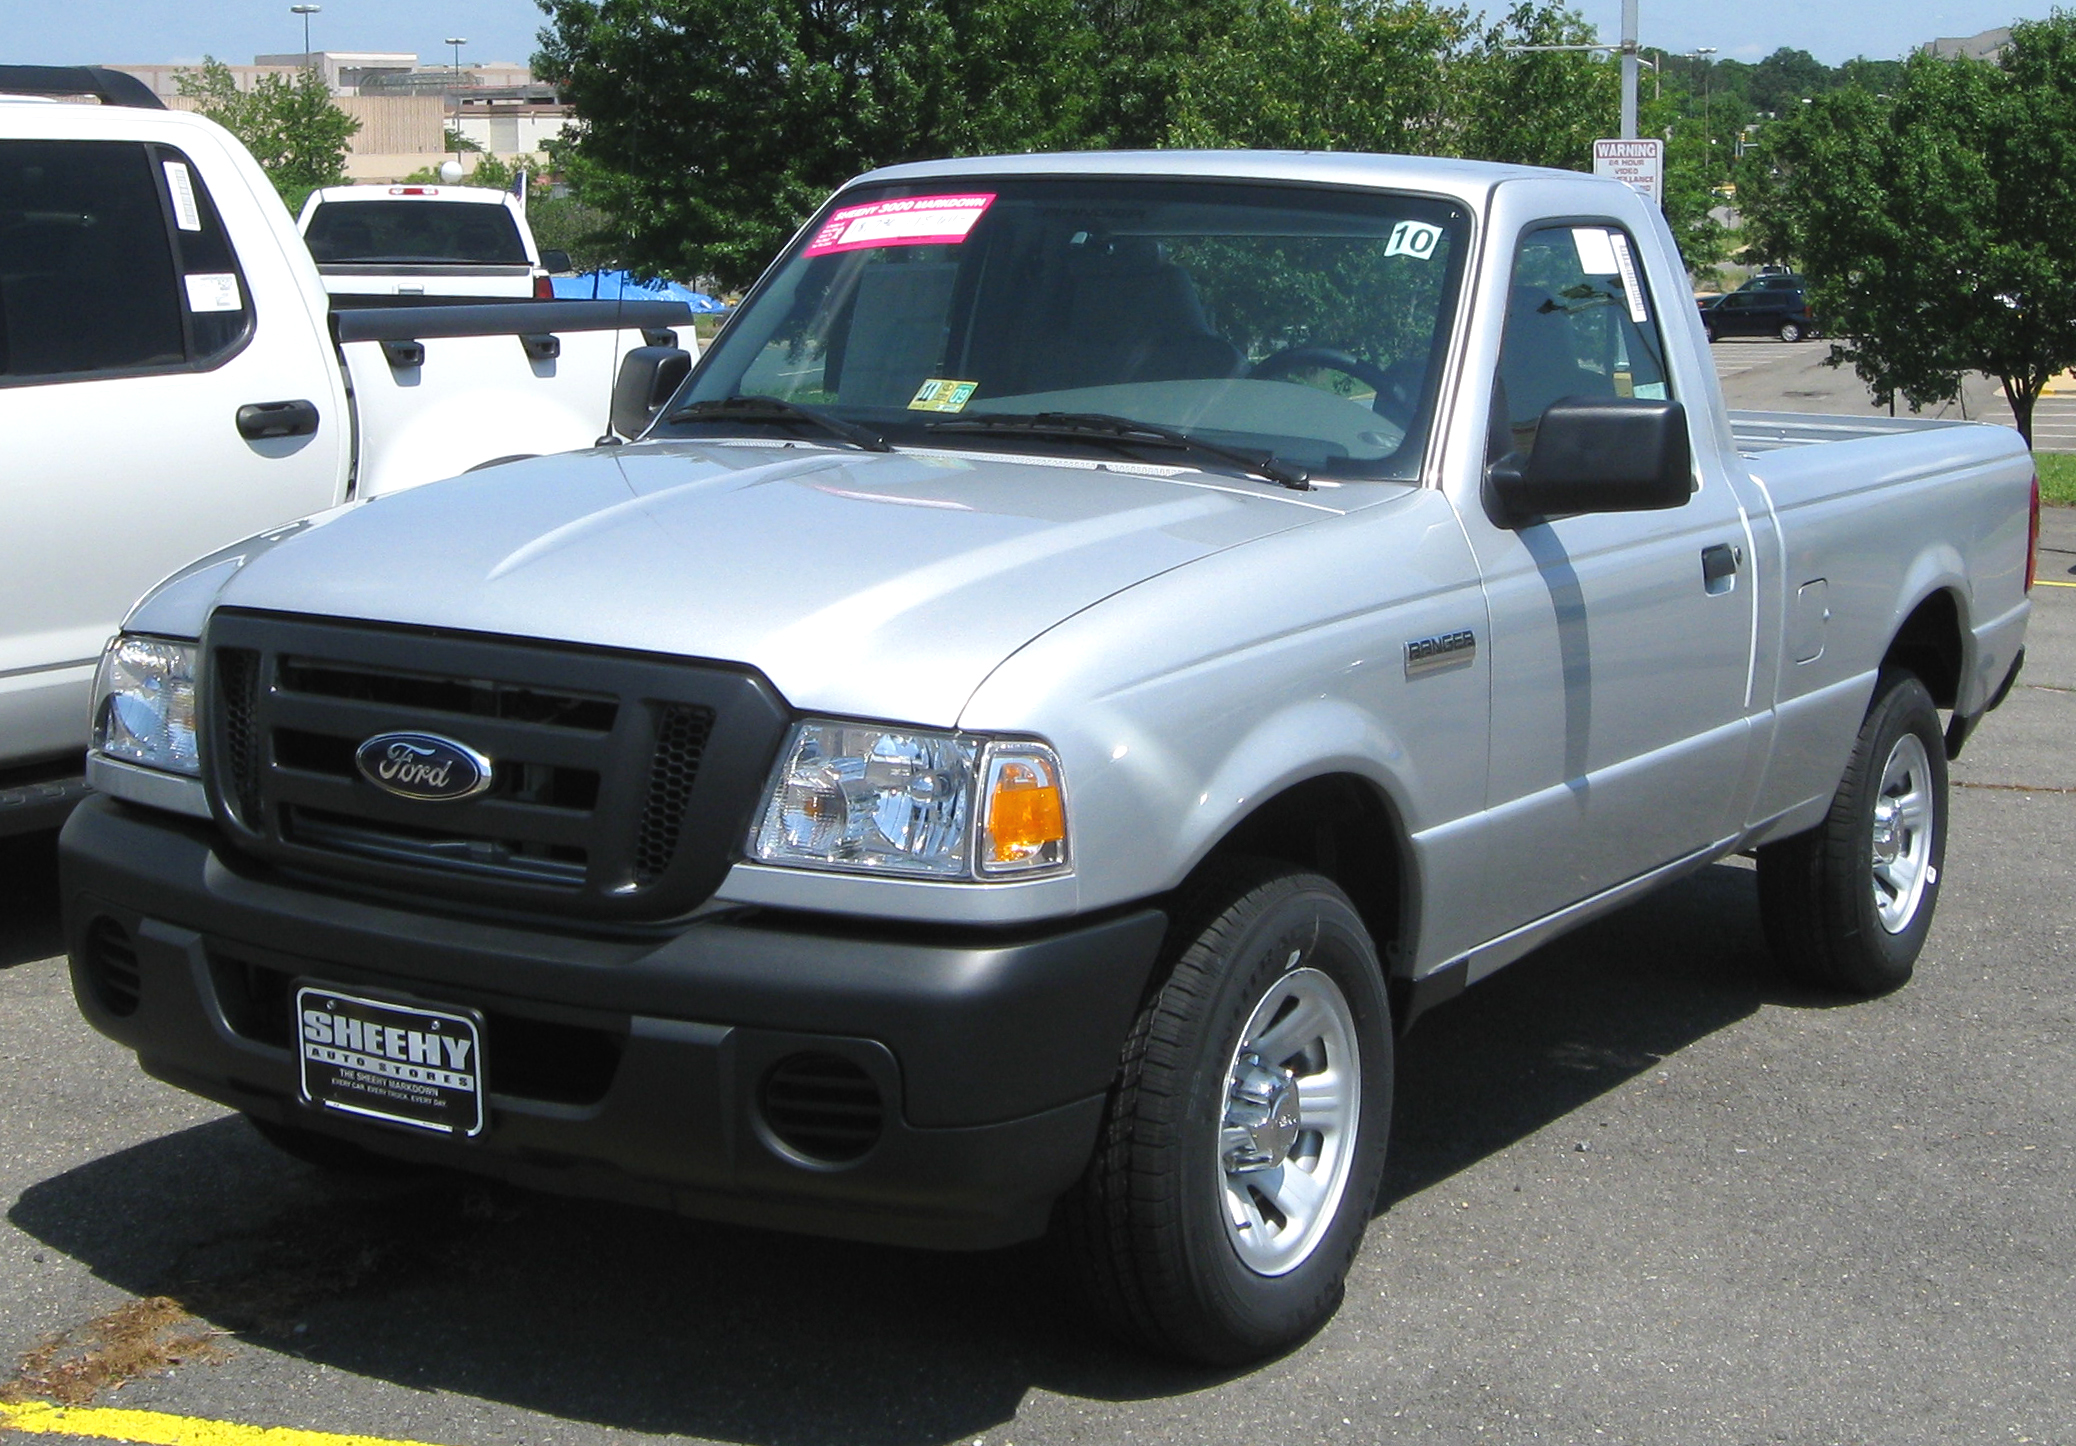 Ford Ranger Xlt Regular Cab